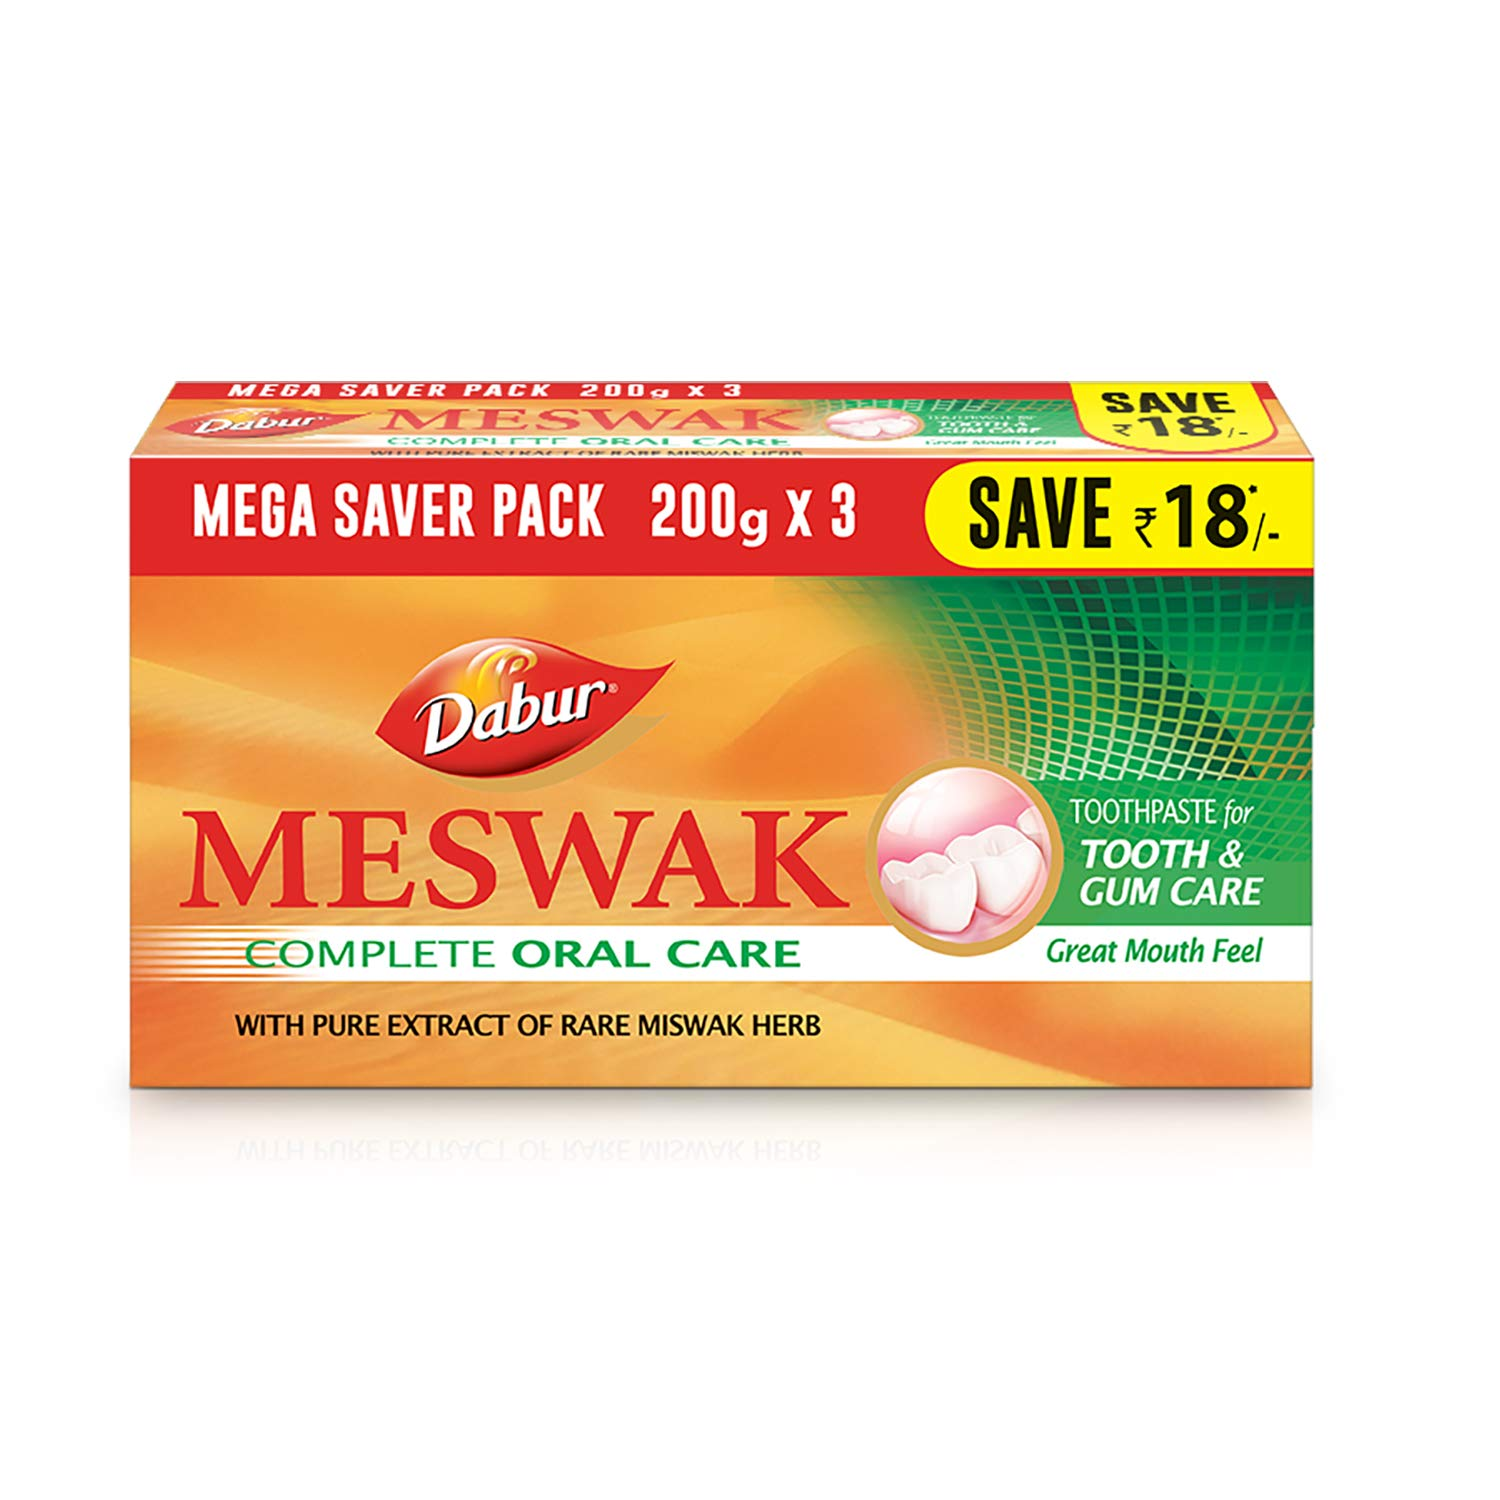 Dabur Meswak: India's No-1 Fluoride Free Toothpaste with Antibacterial, Anti Inflammatory & Astringent benefits |Helps fight Plaque, Tartar, Cavity and Tooth Decay - 600gm(200g*3)